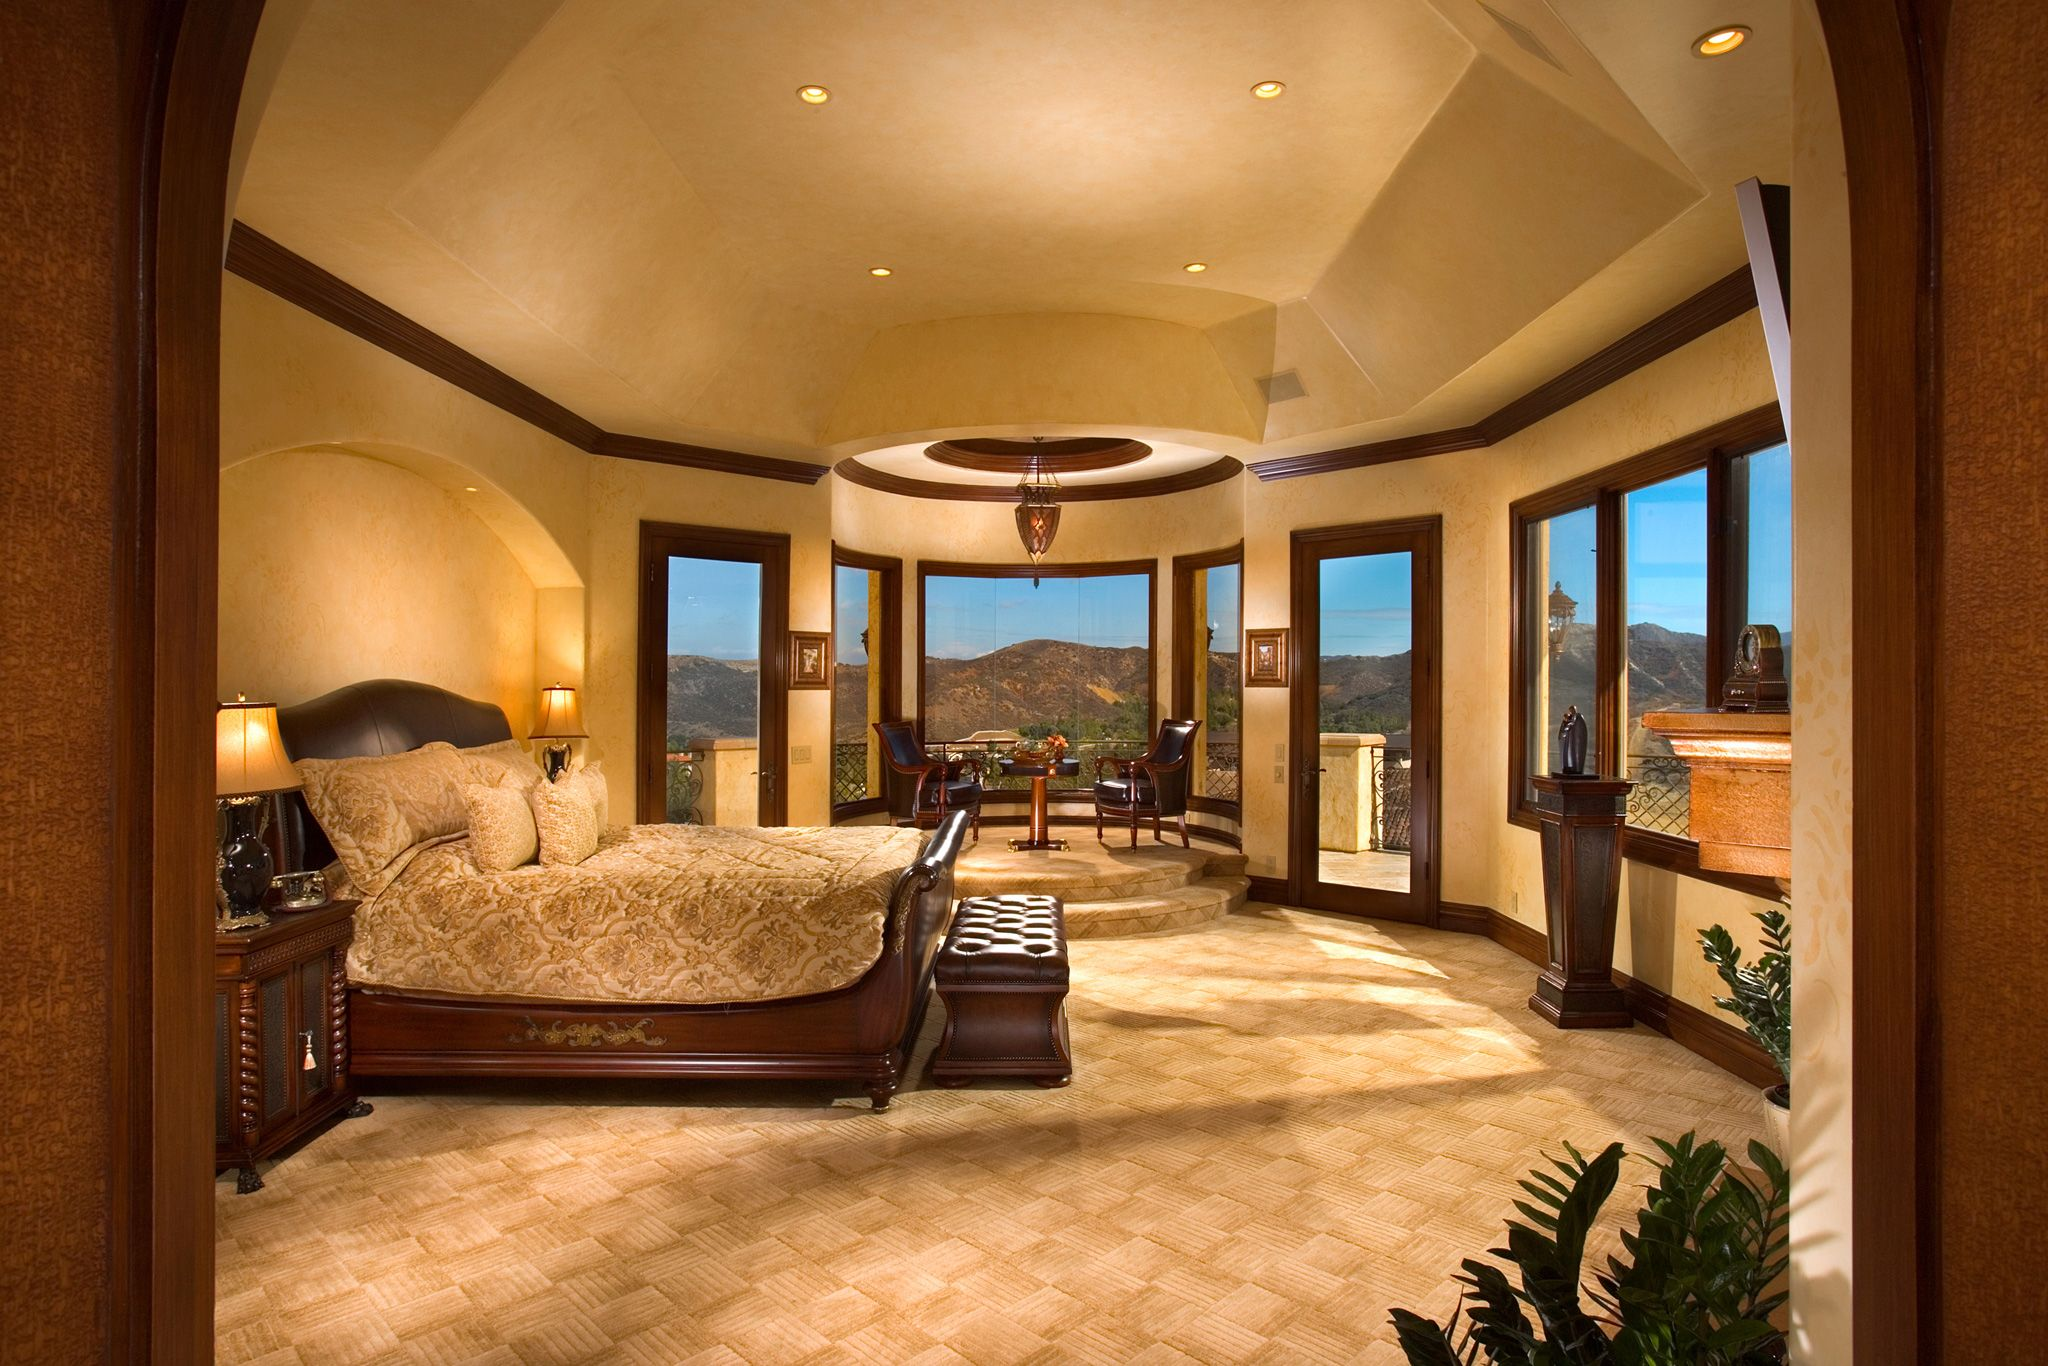 bedrooms design ideas luxury master bedroom master bedroom design